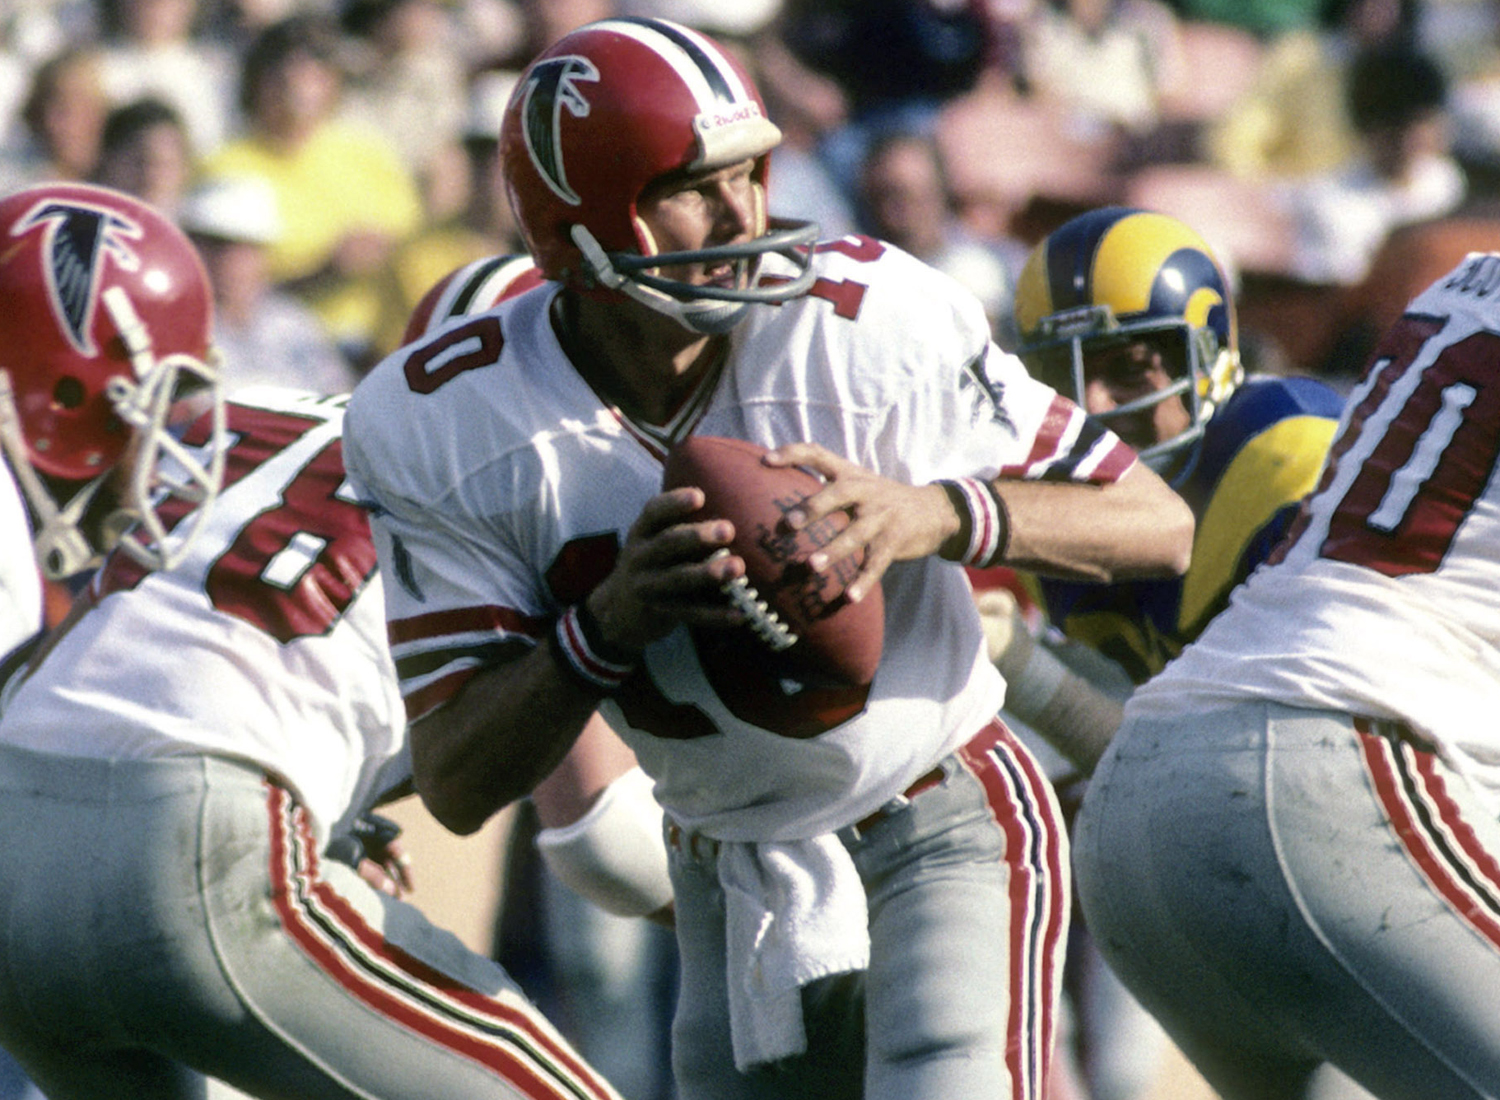 1975 NFL Draft, first round, Atlanta Falcons -- Bartkowski played 11 seasons for the Falcons (1975-1985) and one season for the Los Angeles Rams (1986). He is the Falcons' all-time leading passing yardage leader and was a two-time Pro Bowl selection. (National Football League)